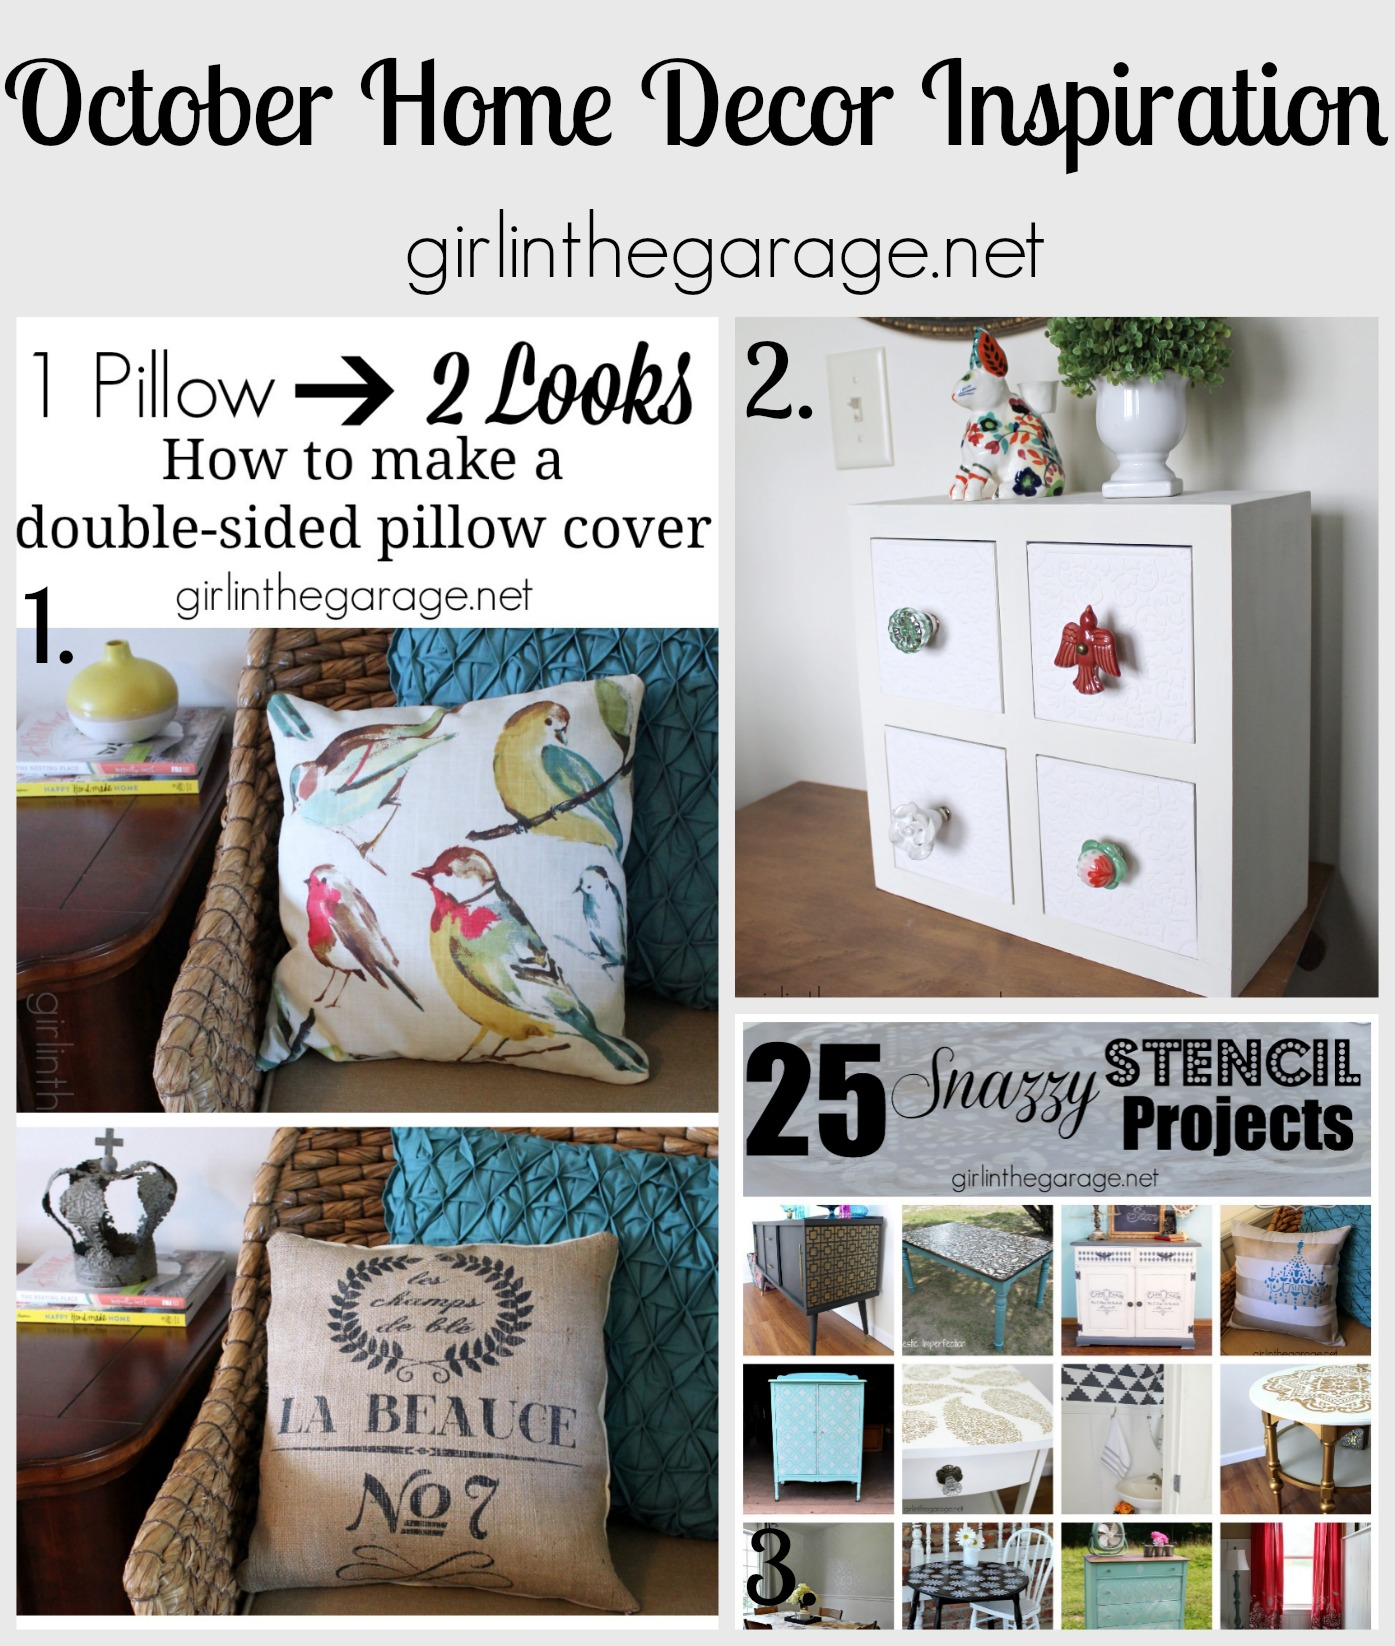 Pinterest Home Decor 2014: October In Review